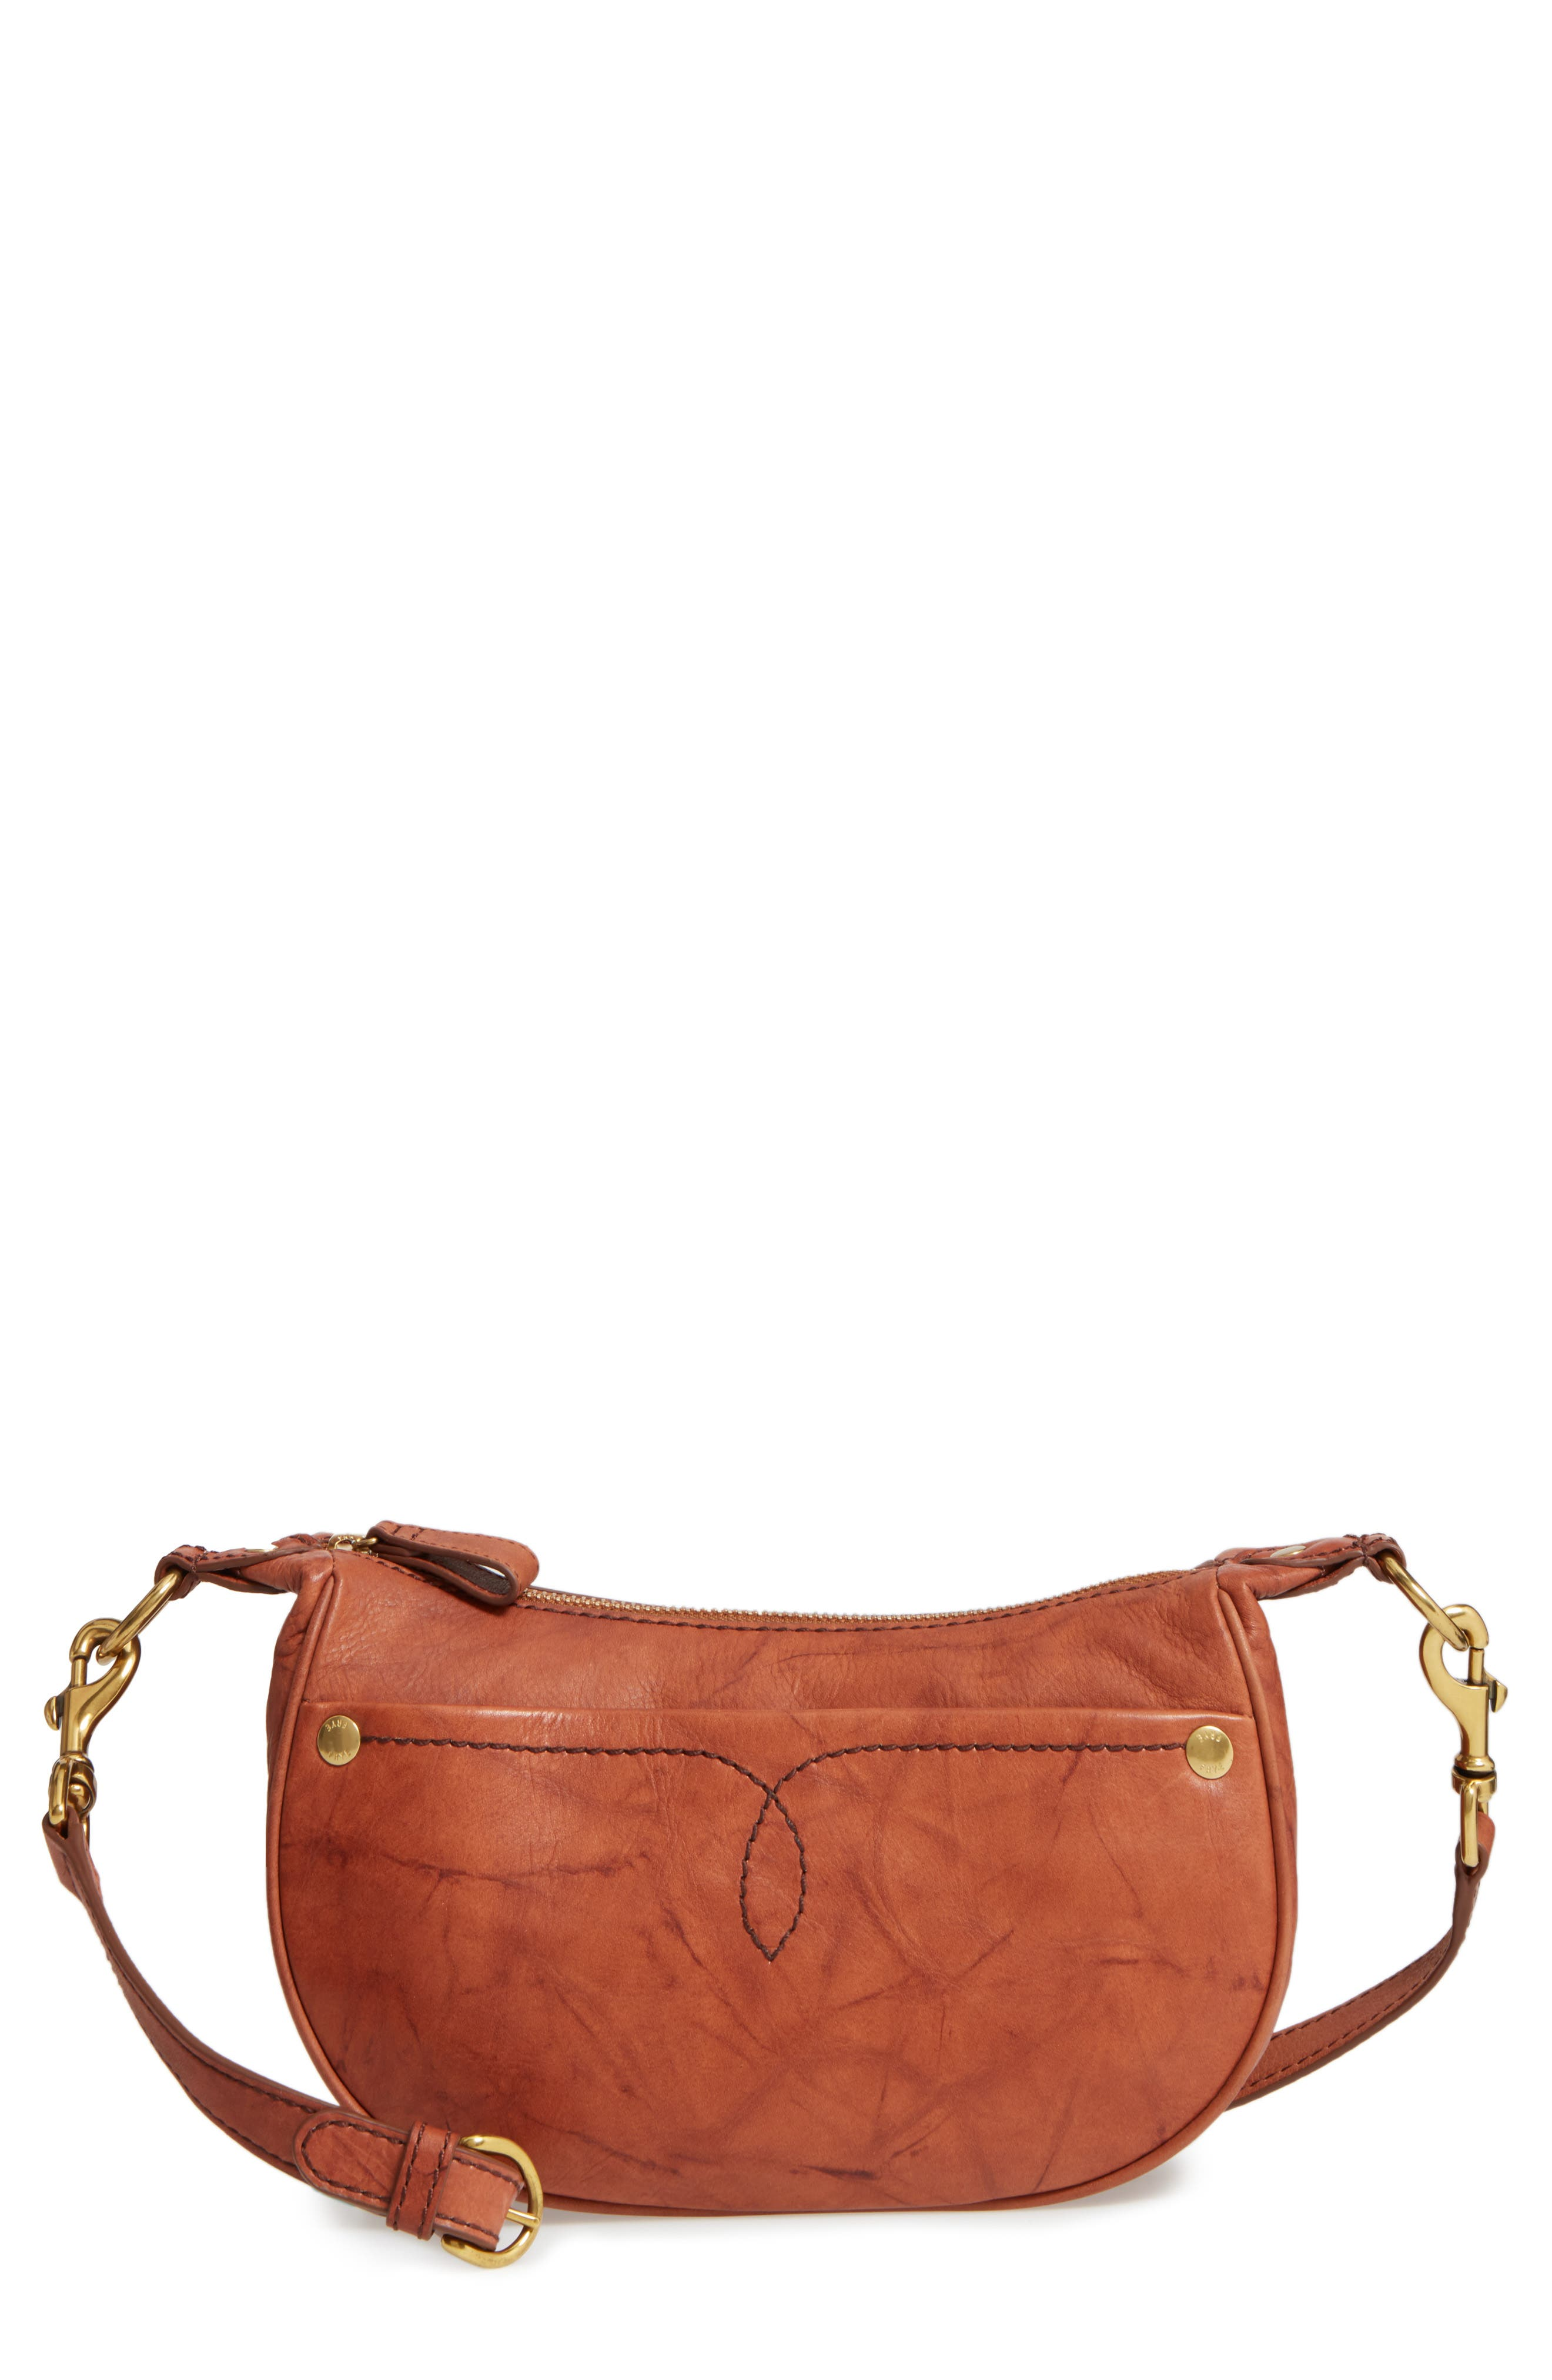 Small Campus Leather Crossbody Bag,                             Main thumbnail 1, color,                             Saddle